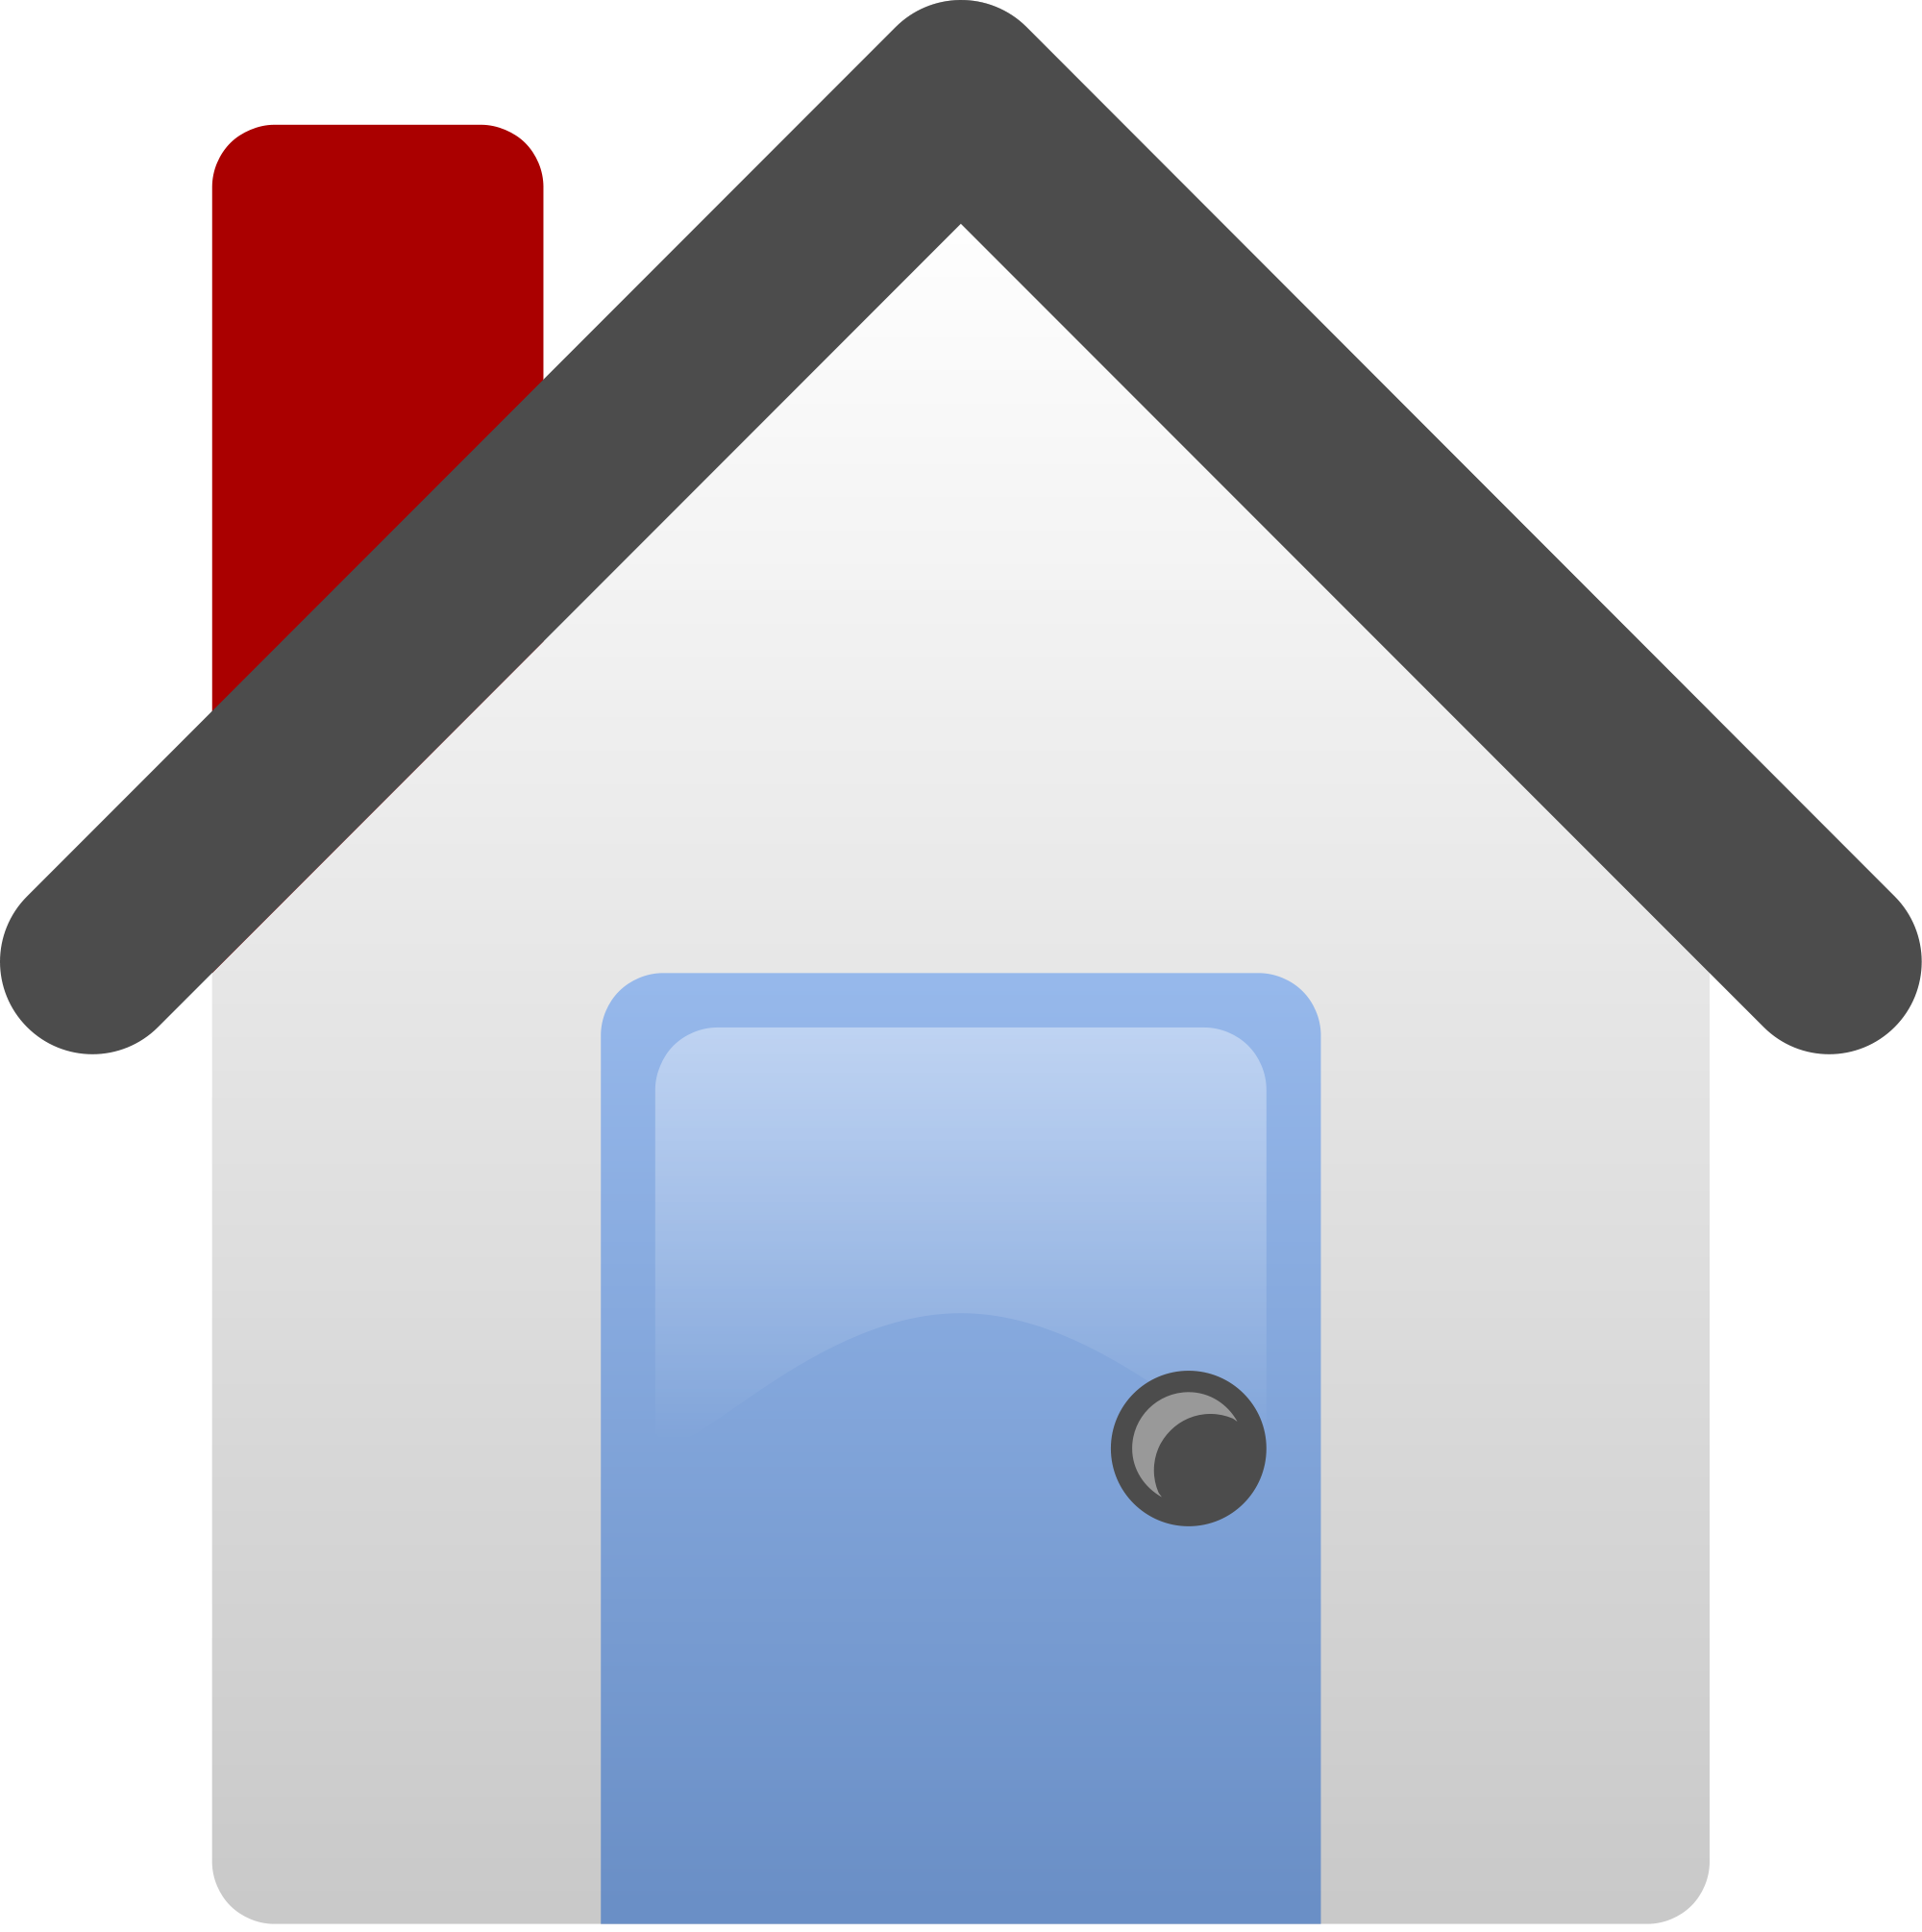 File house svg wikimedia. Commons clipart picture free download